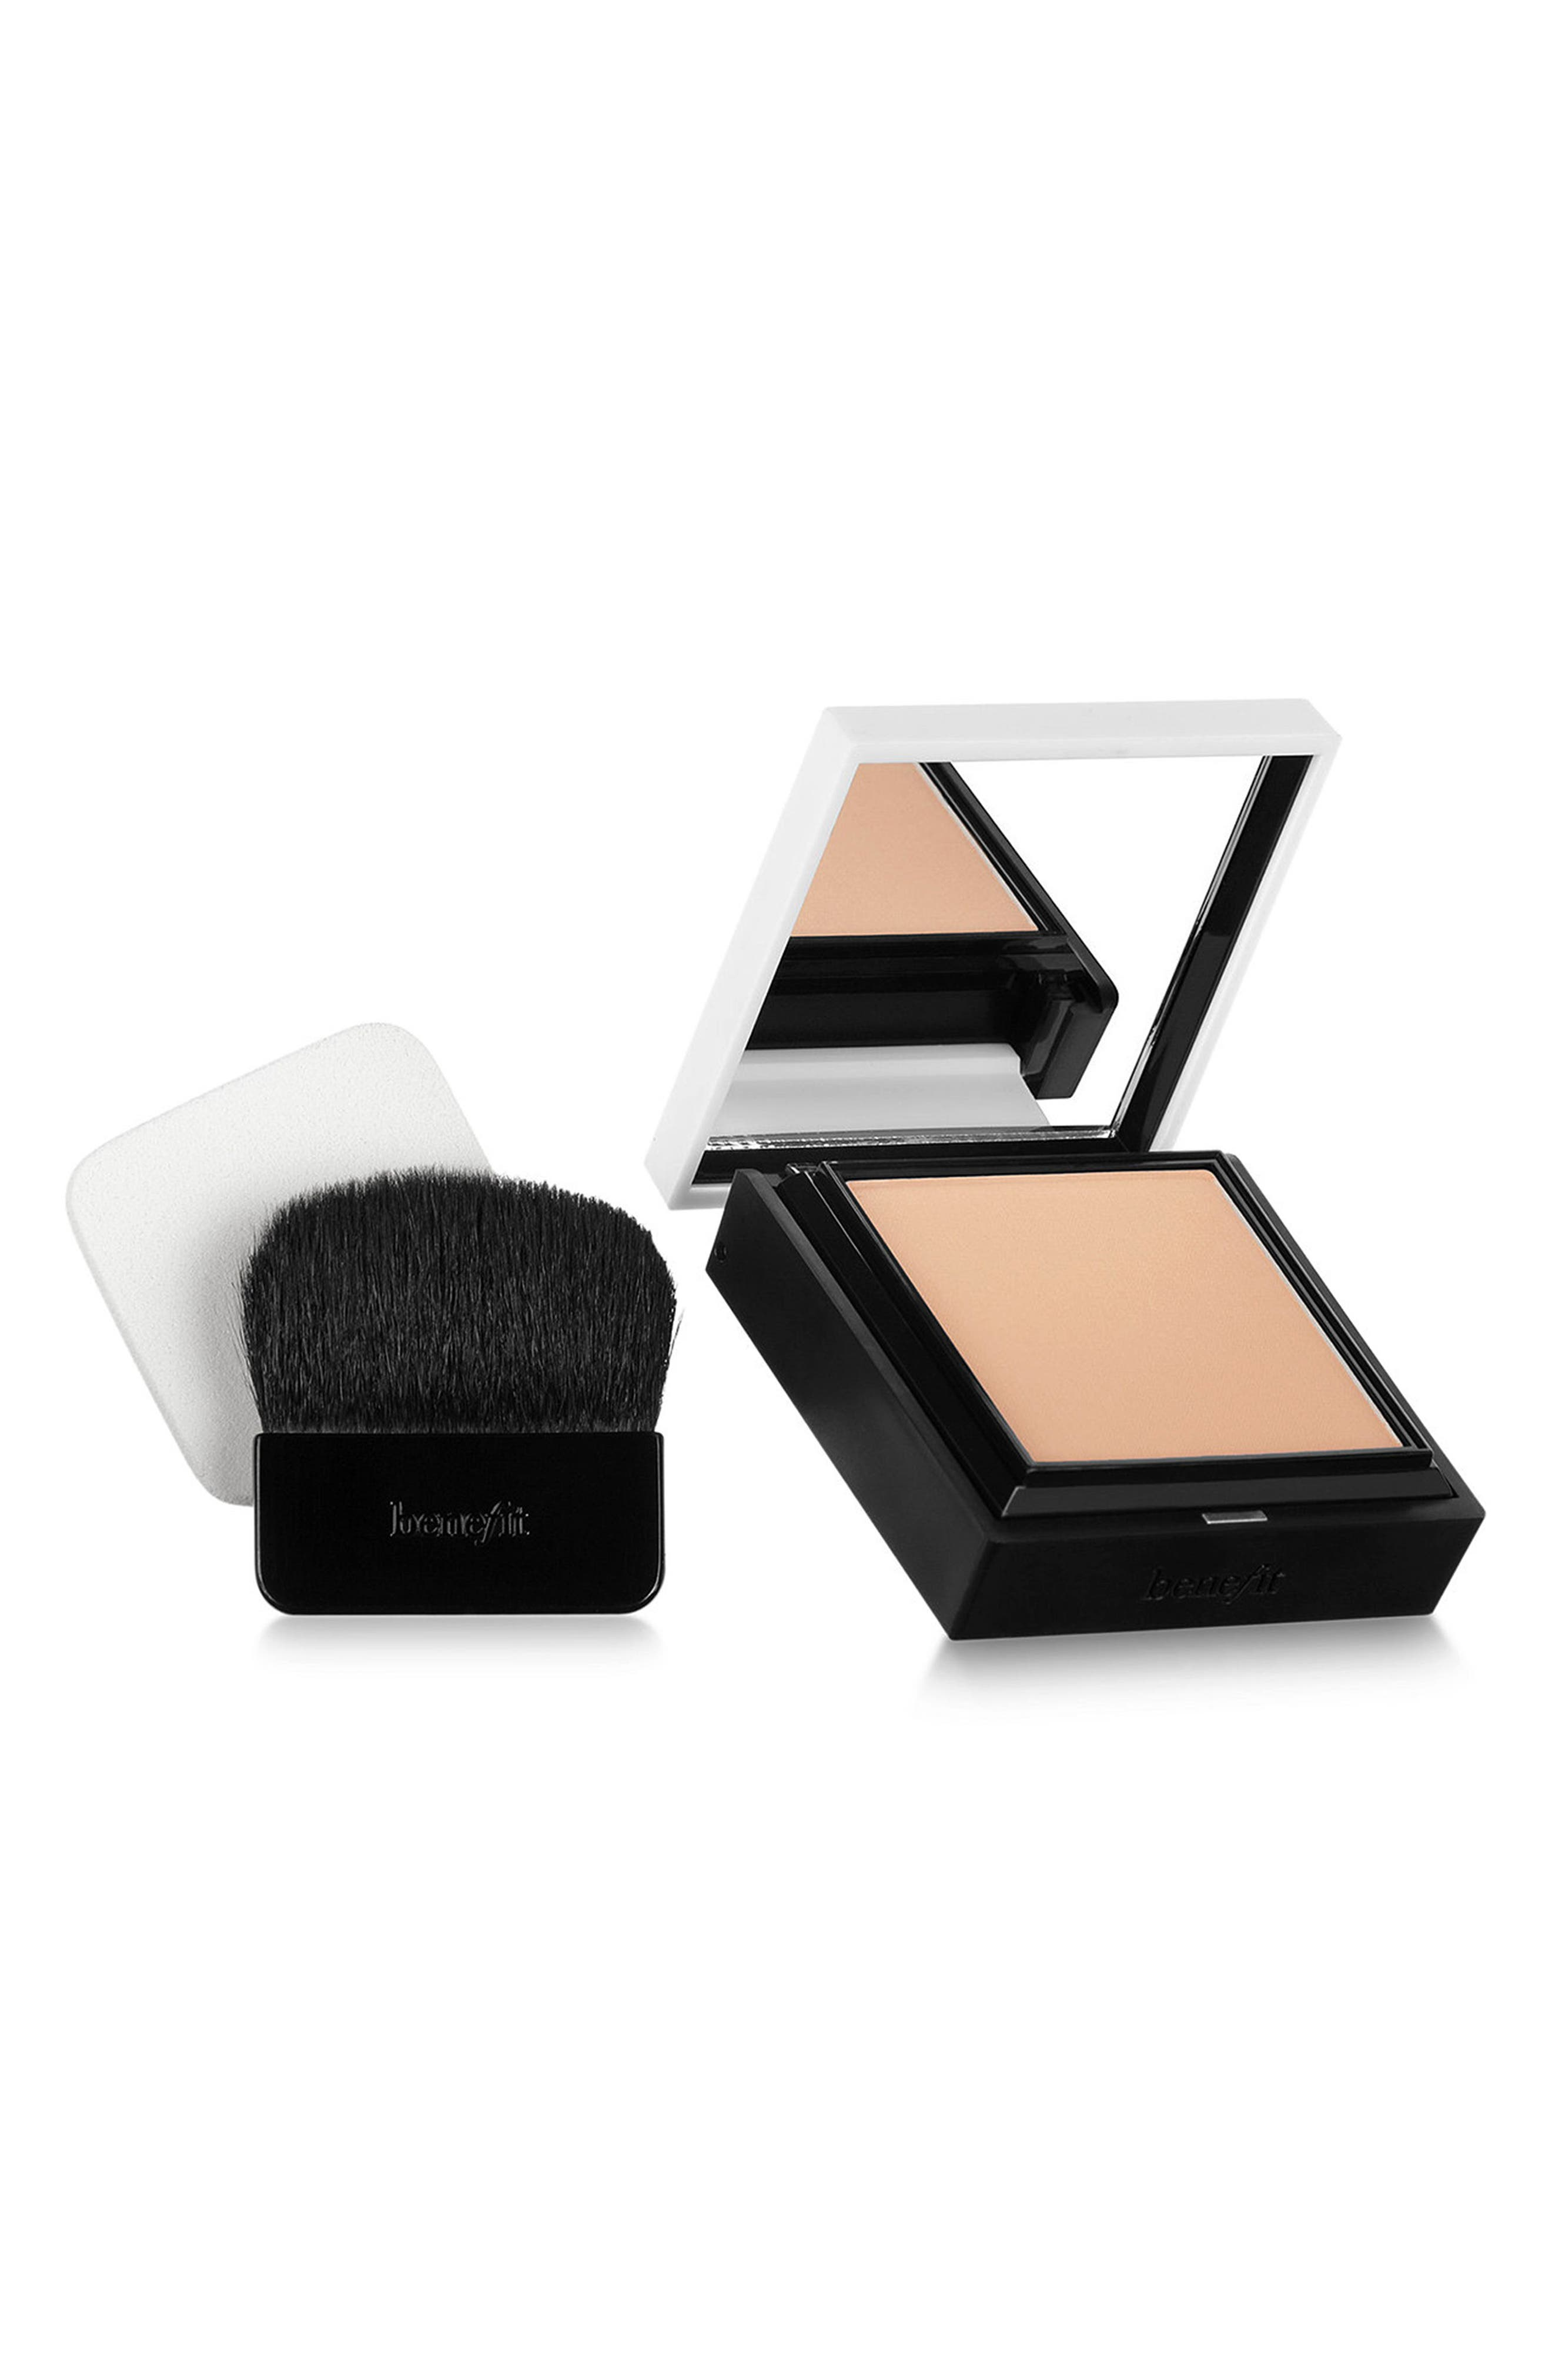 Benefit Hello Flawless! Powder Foundation,                             Main thumbnail 1, color,                             03 Me Vain/ Champagne